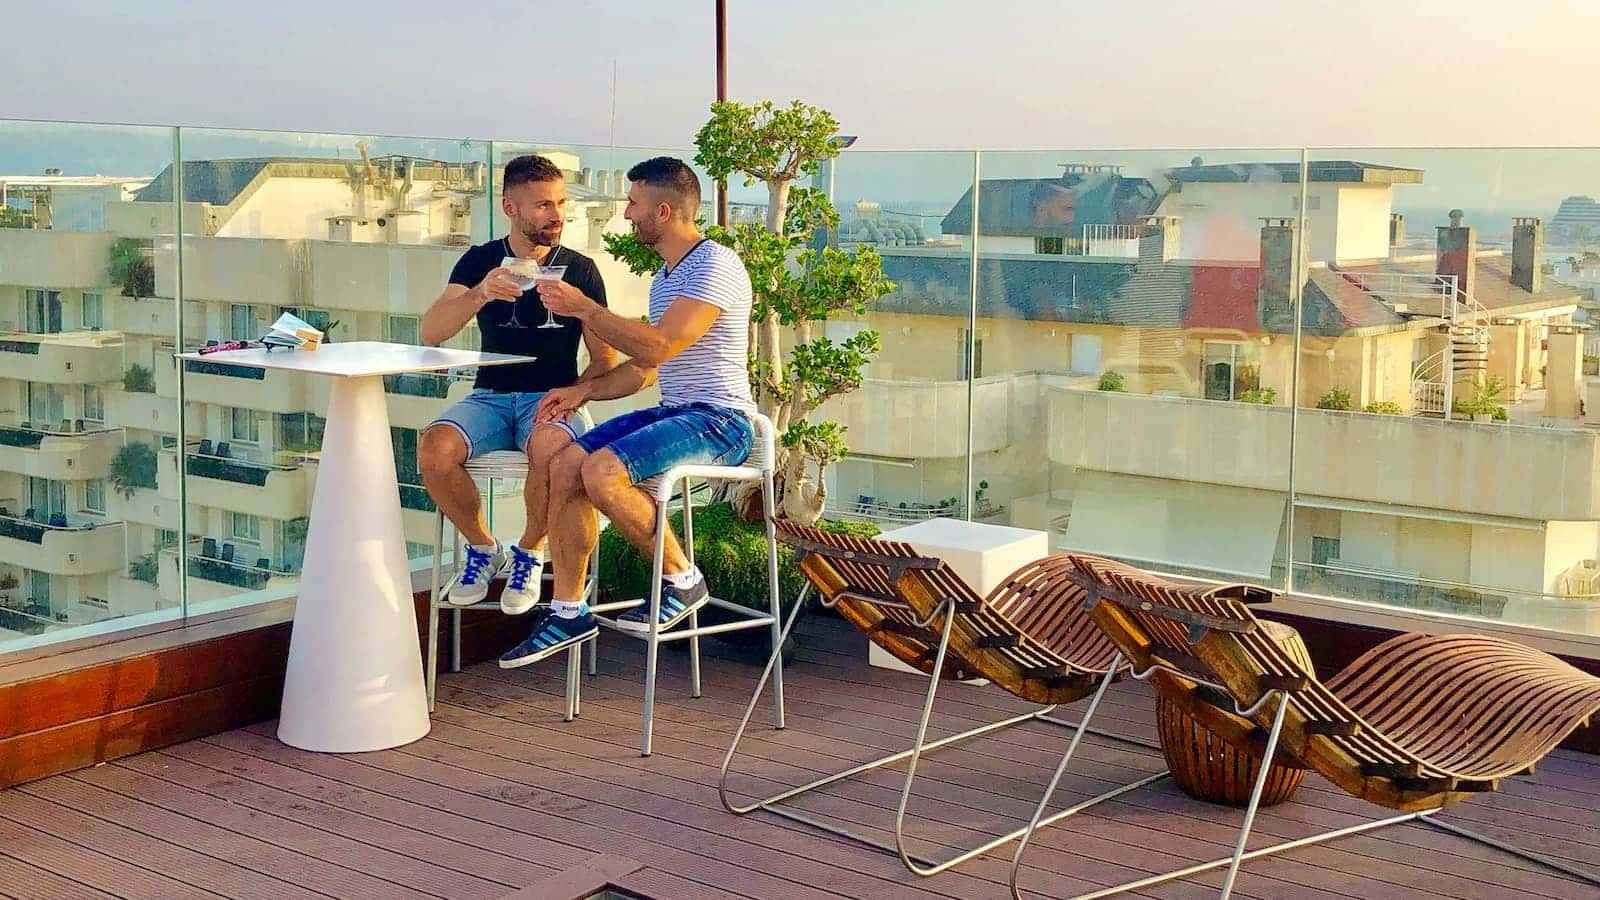 MiM Hotel is a gay friendly spot that offers a truly pampering experience as well as the most romantic rooftop bar for sunset cocktails!